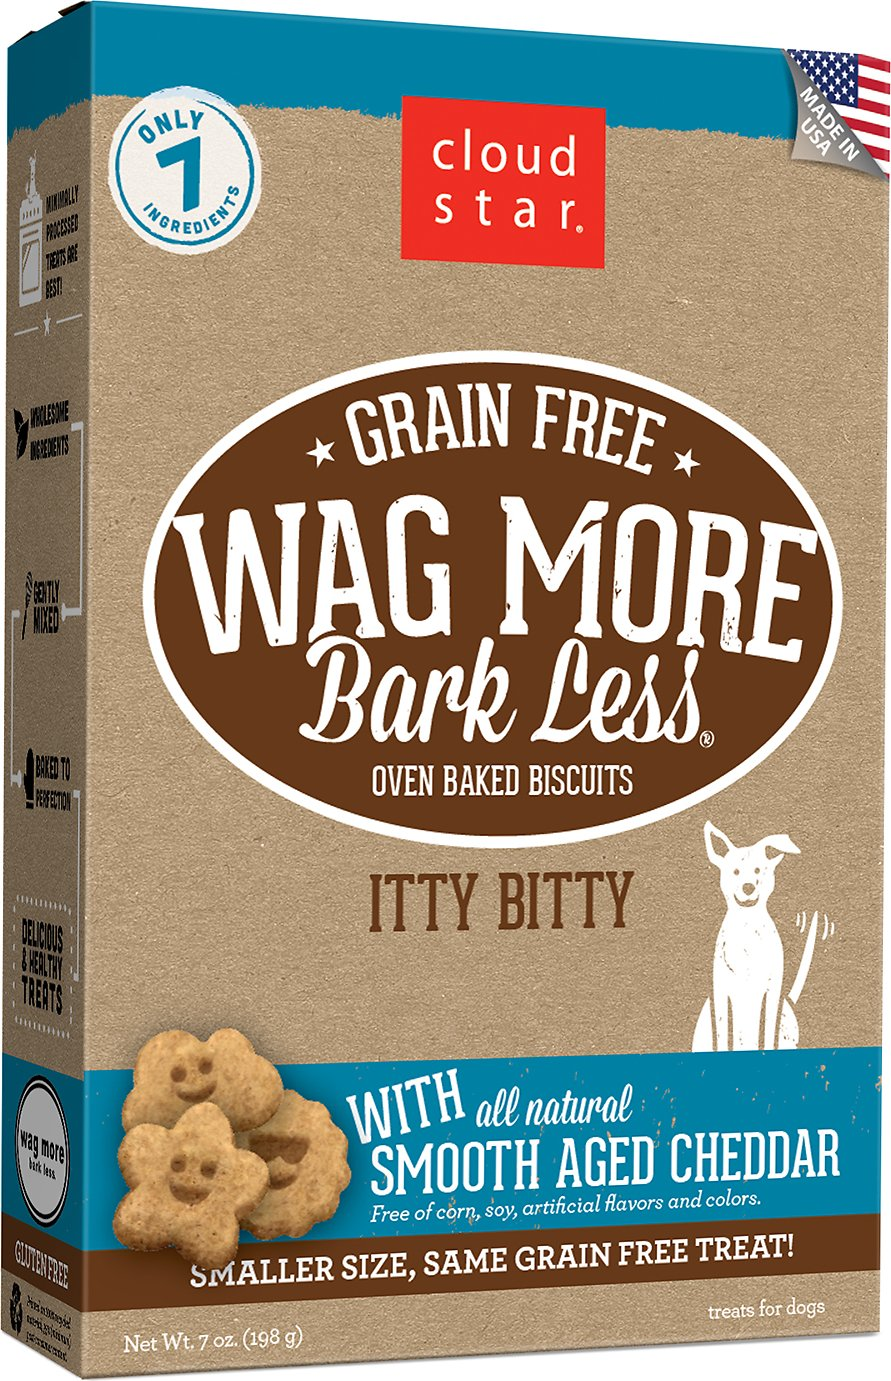 Cloud Star Wag More Bark Less Grain-Free Itty Bitty Oven Baked with Smooth Aged Cheddar Dog Treats, 7-oz bag